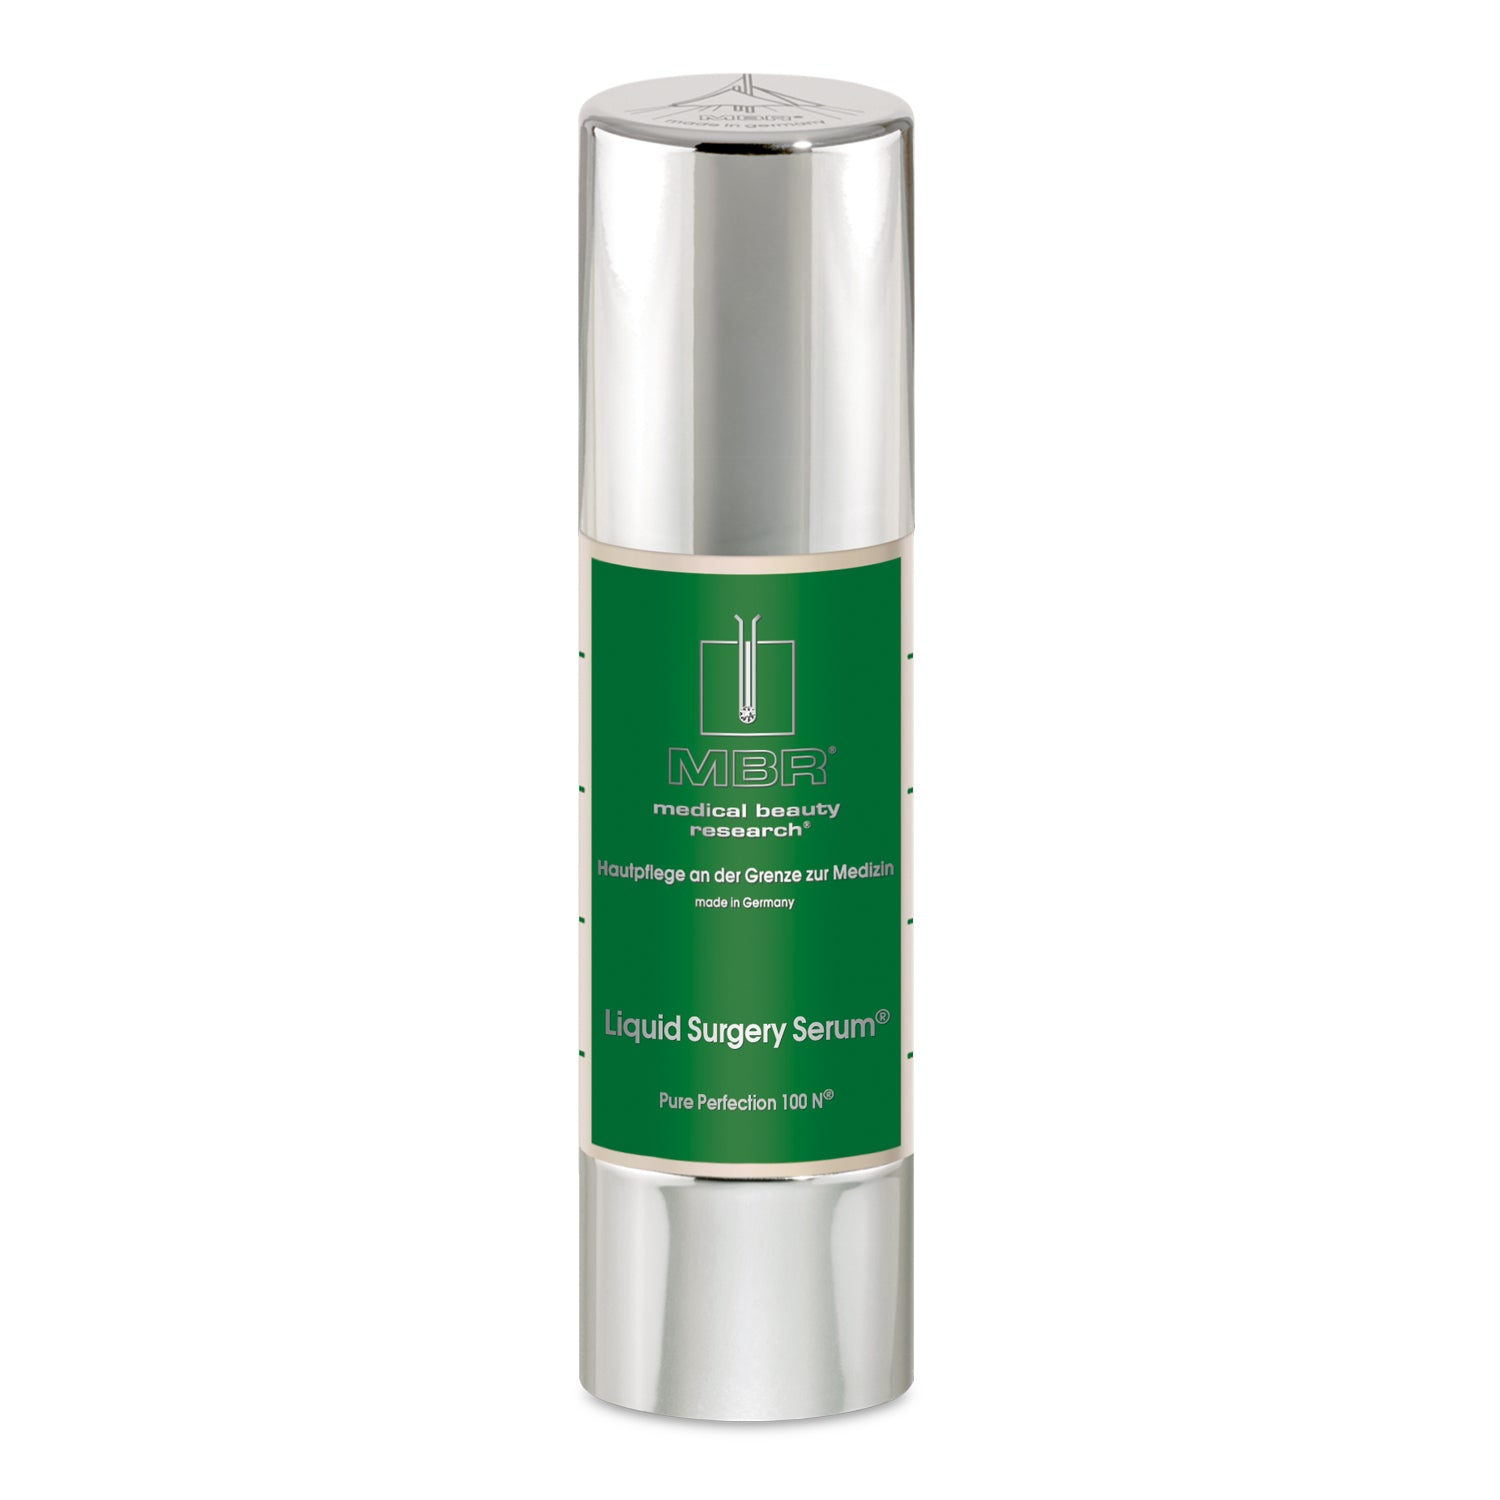 Liquid Surgery Serum® - MBR